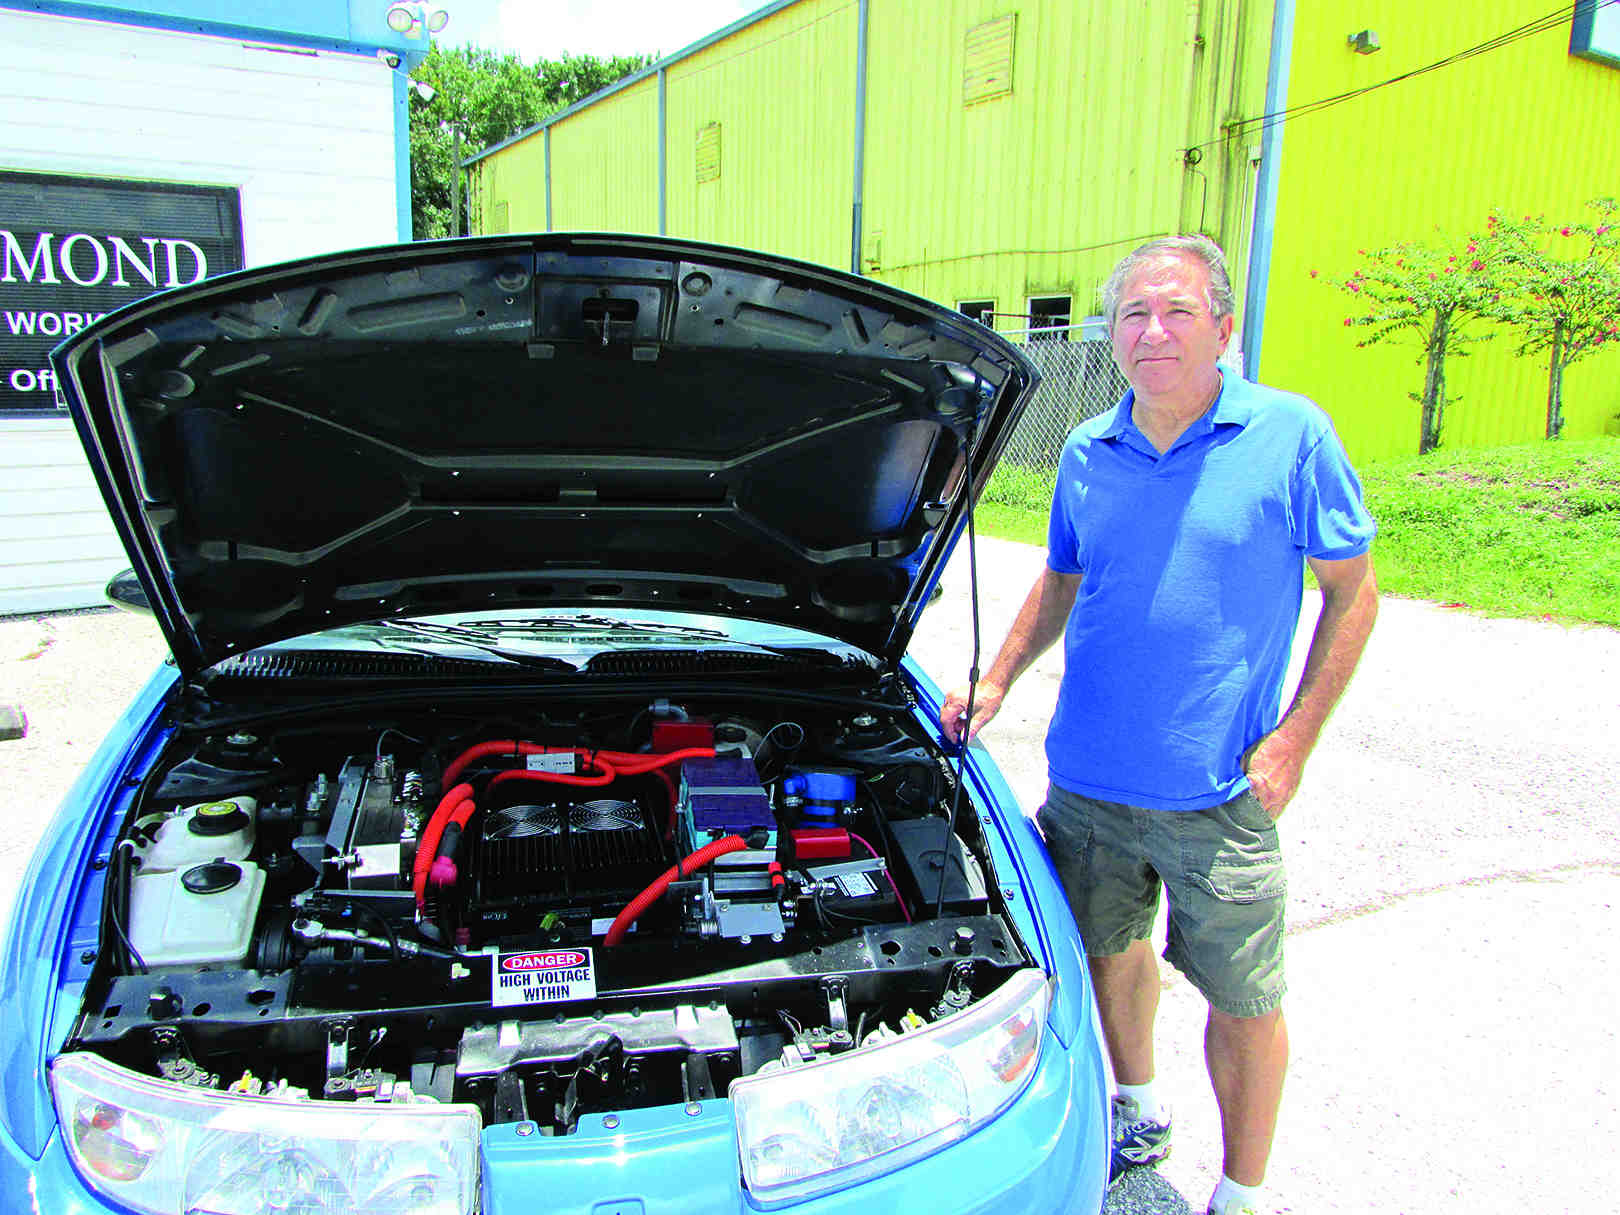 Interest Sparks In Electric Car Conversions Comparison Between Cars And Gasoline Steve Azzoli Said His Creates A Buzz When People Take Look Under Its